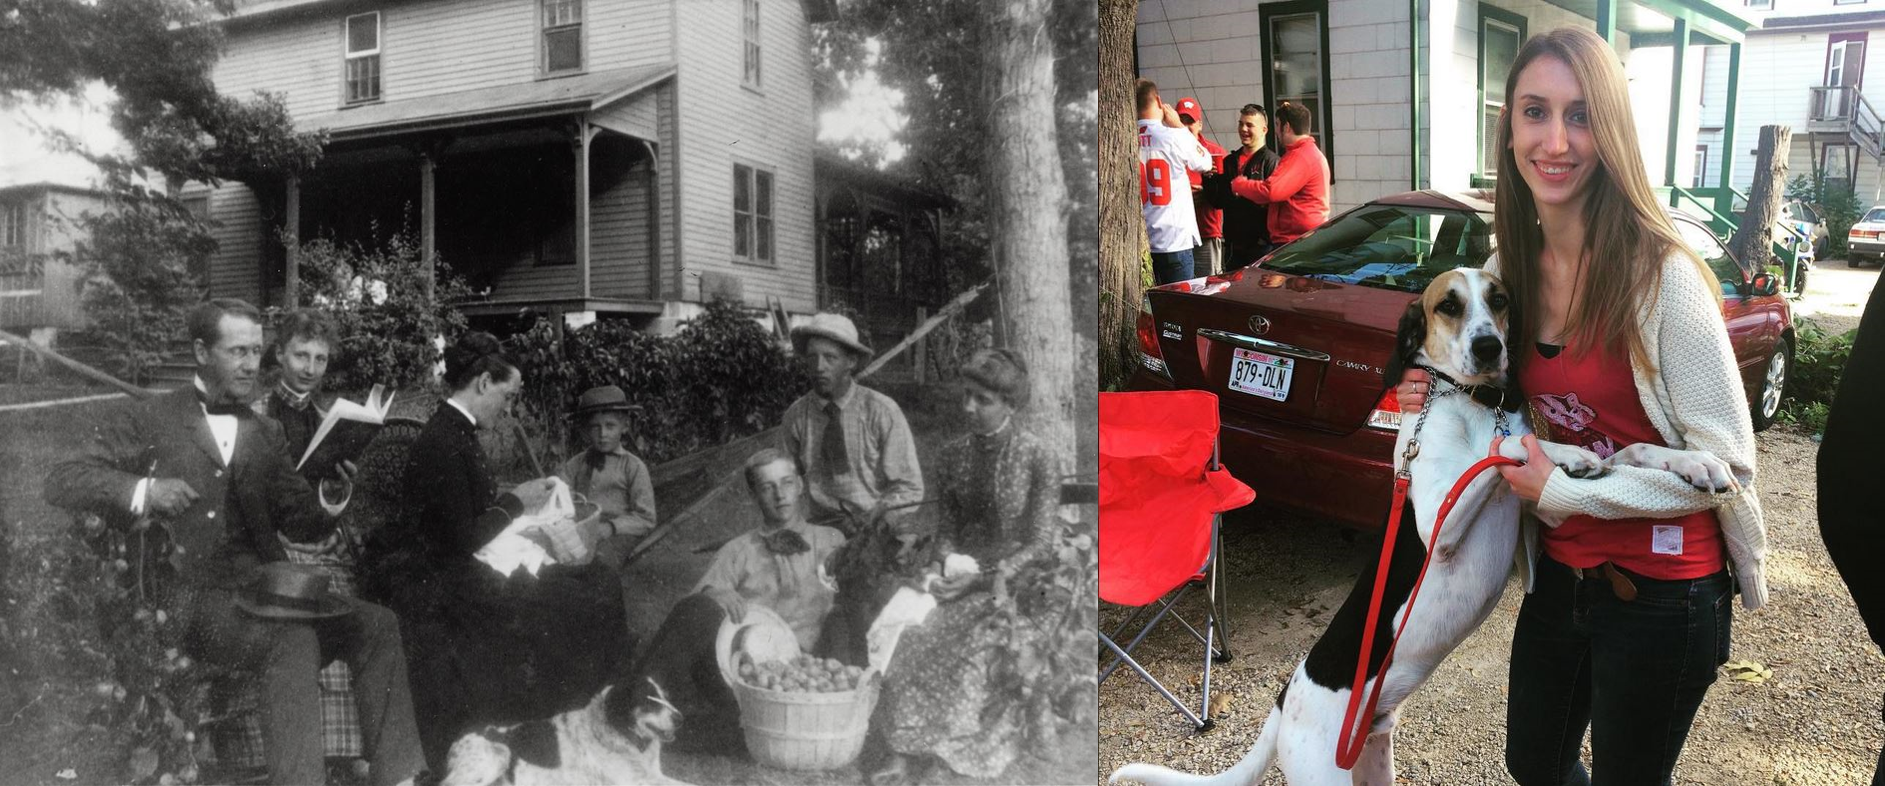 Left: Former history and Latin professor William F. Allen and family pose in the front yard of their home with their dog. Right: A modern-day Badger tailgates with her dog before a football game.